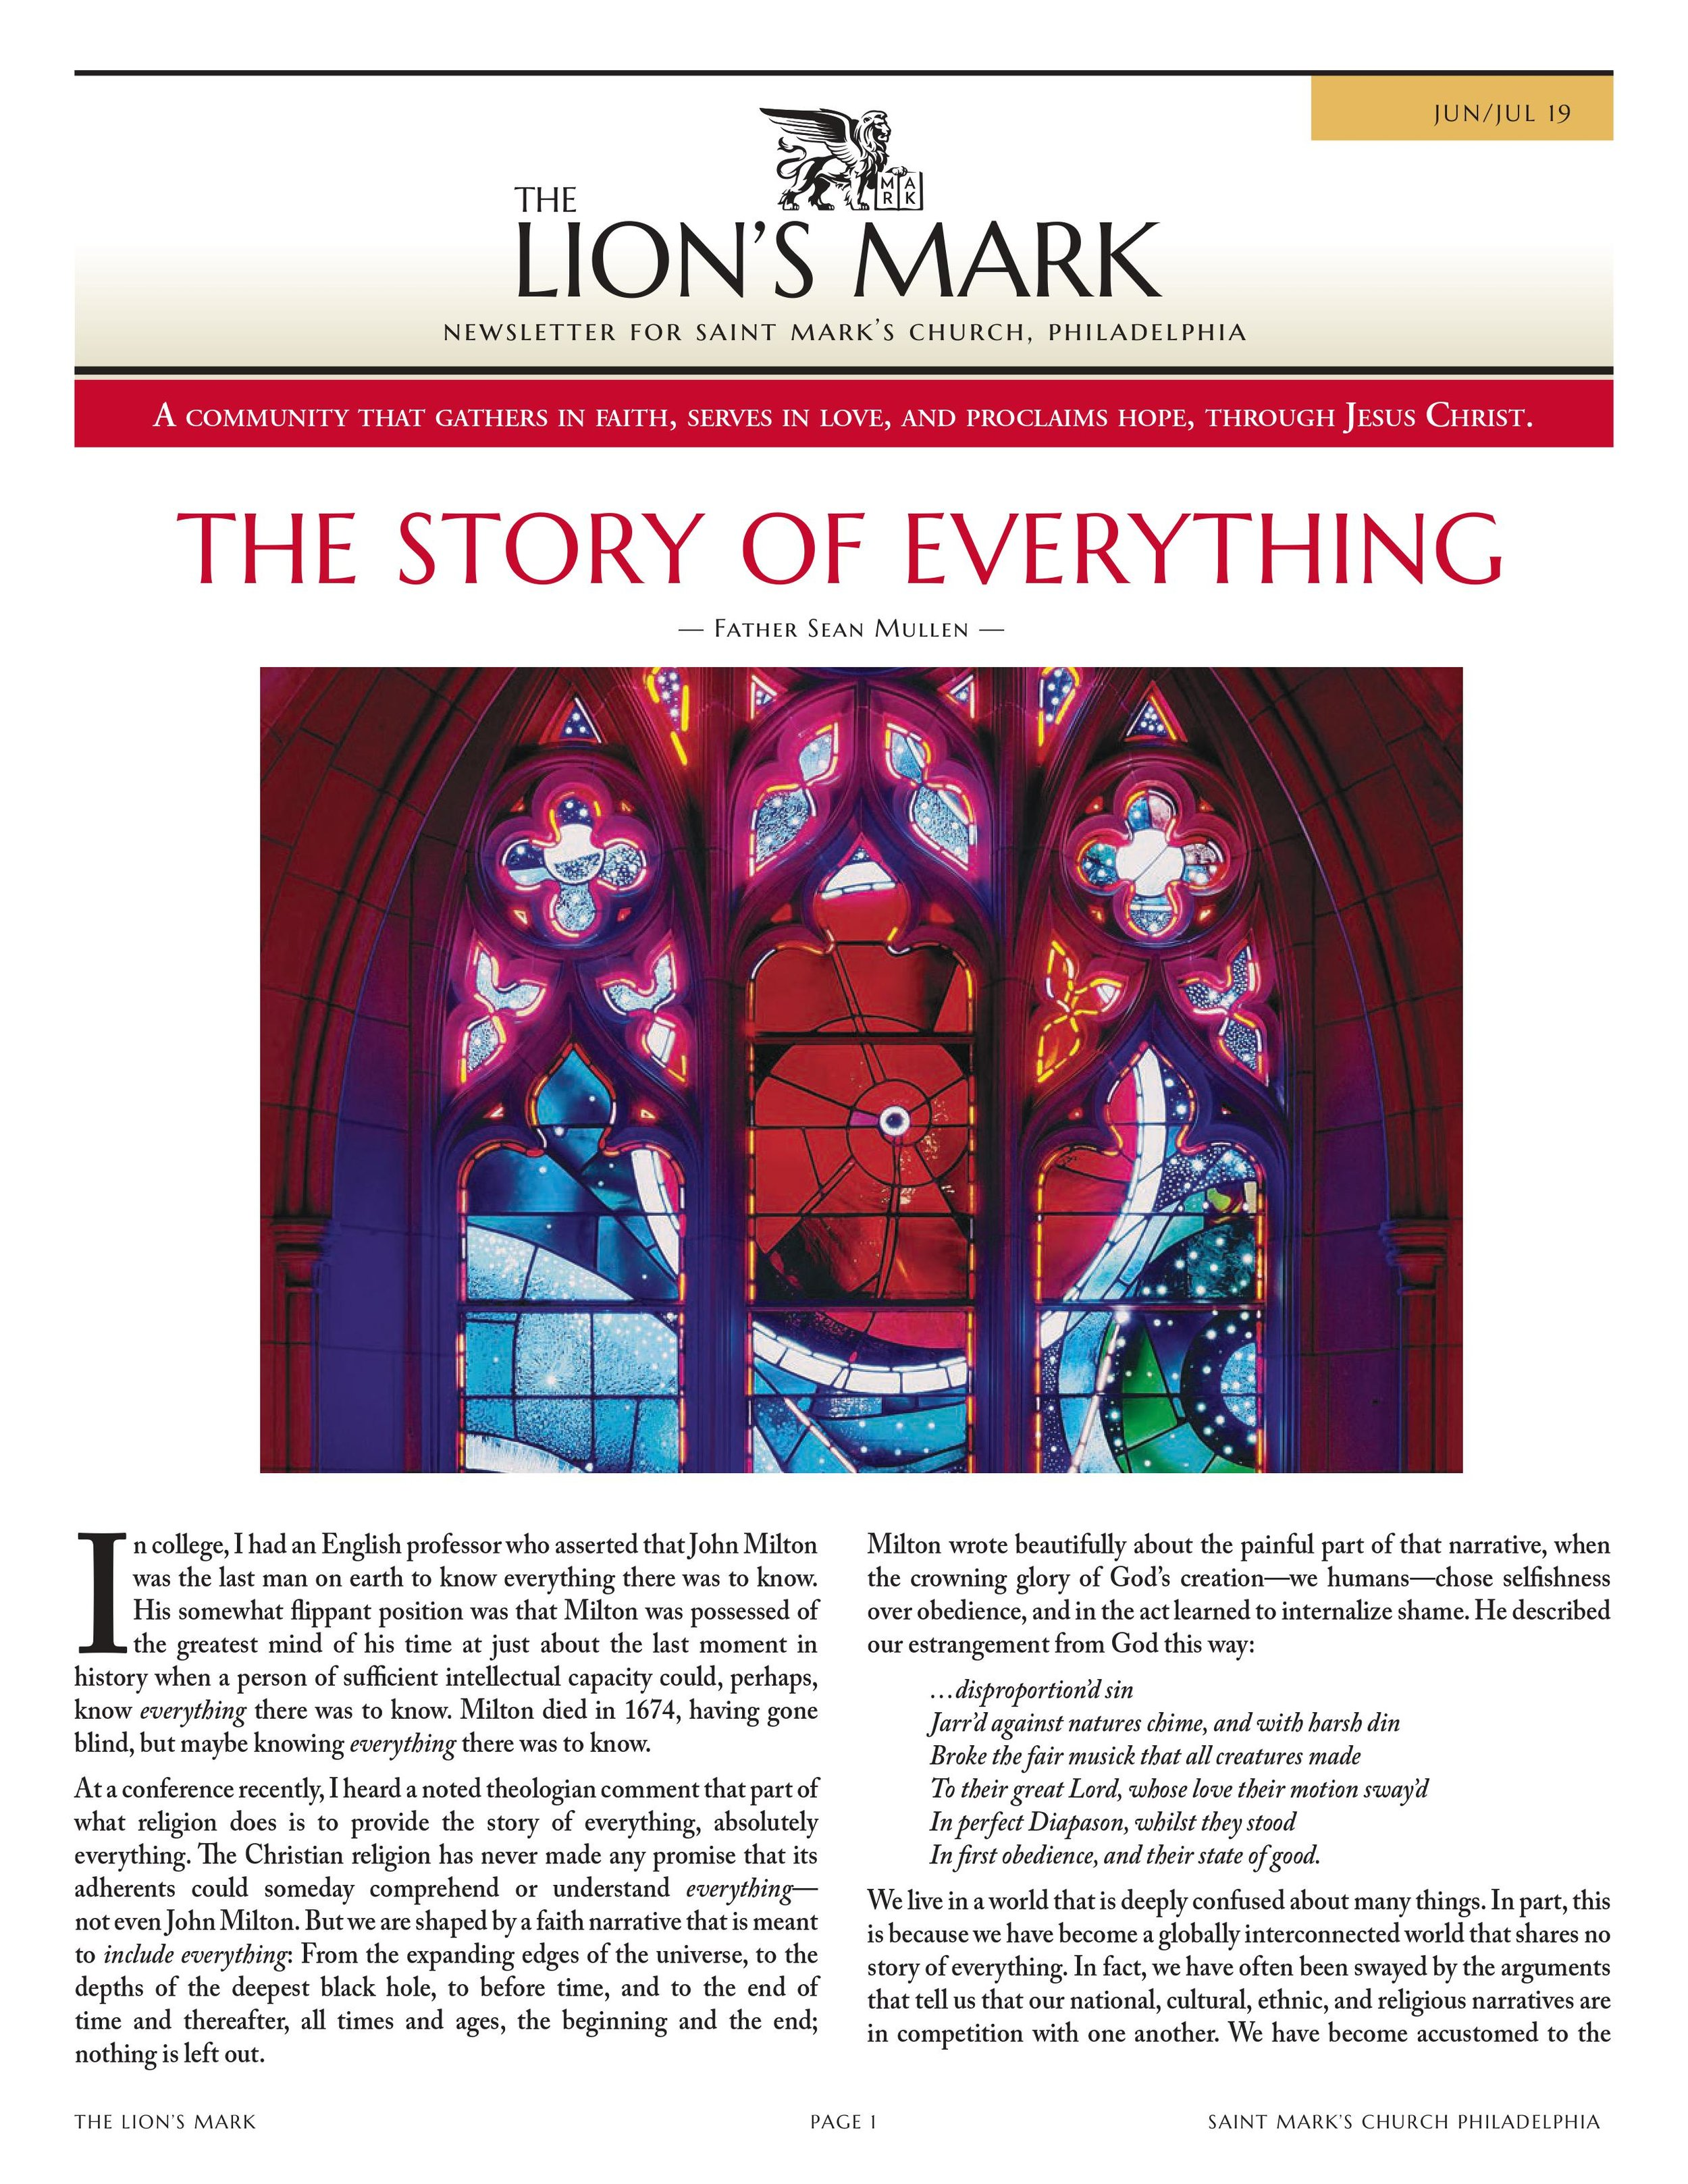 Lion's Mark JunJuly Cover.jpg